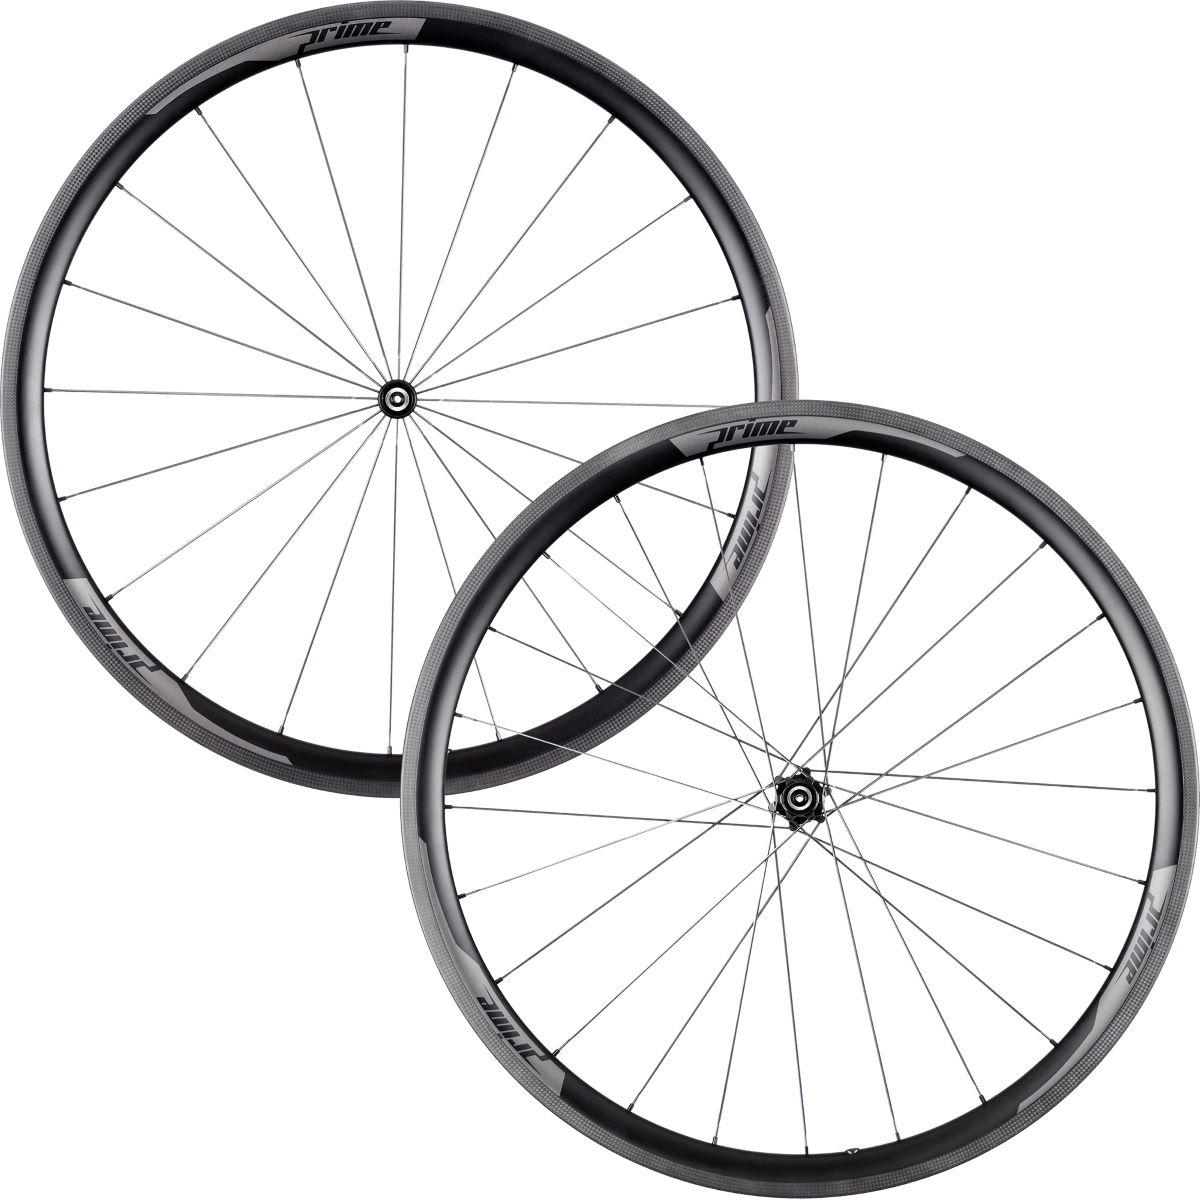 Prime RP-35 Carbon Tubular Road Wheelset - 700c Shimano/SRAM Black Decal Roues performance